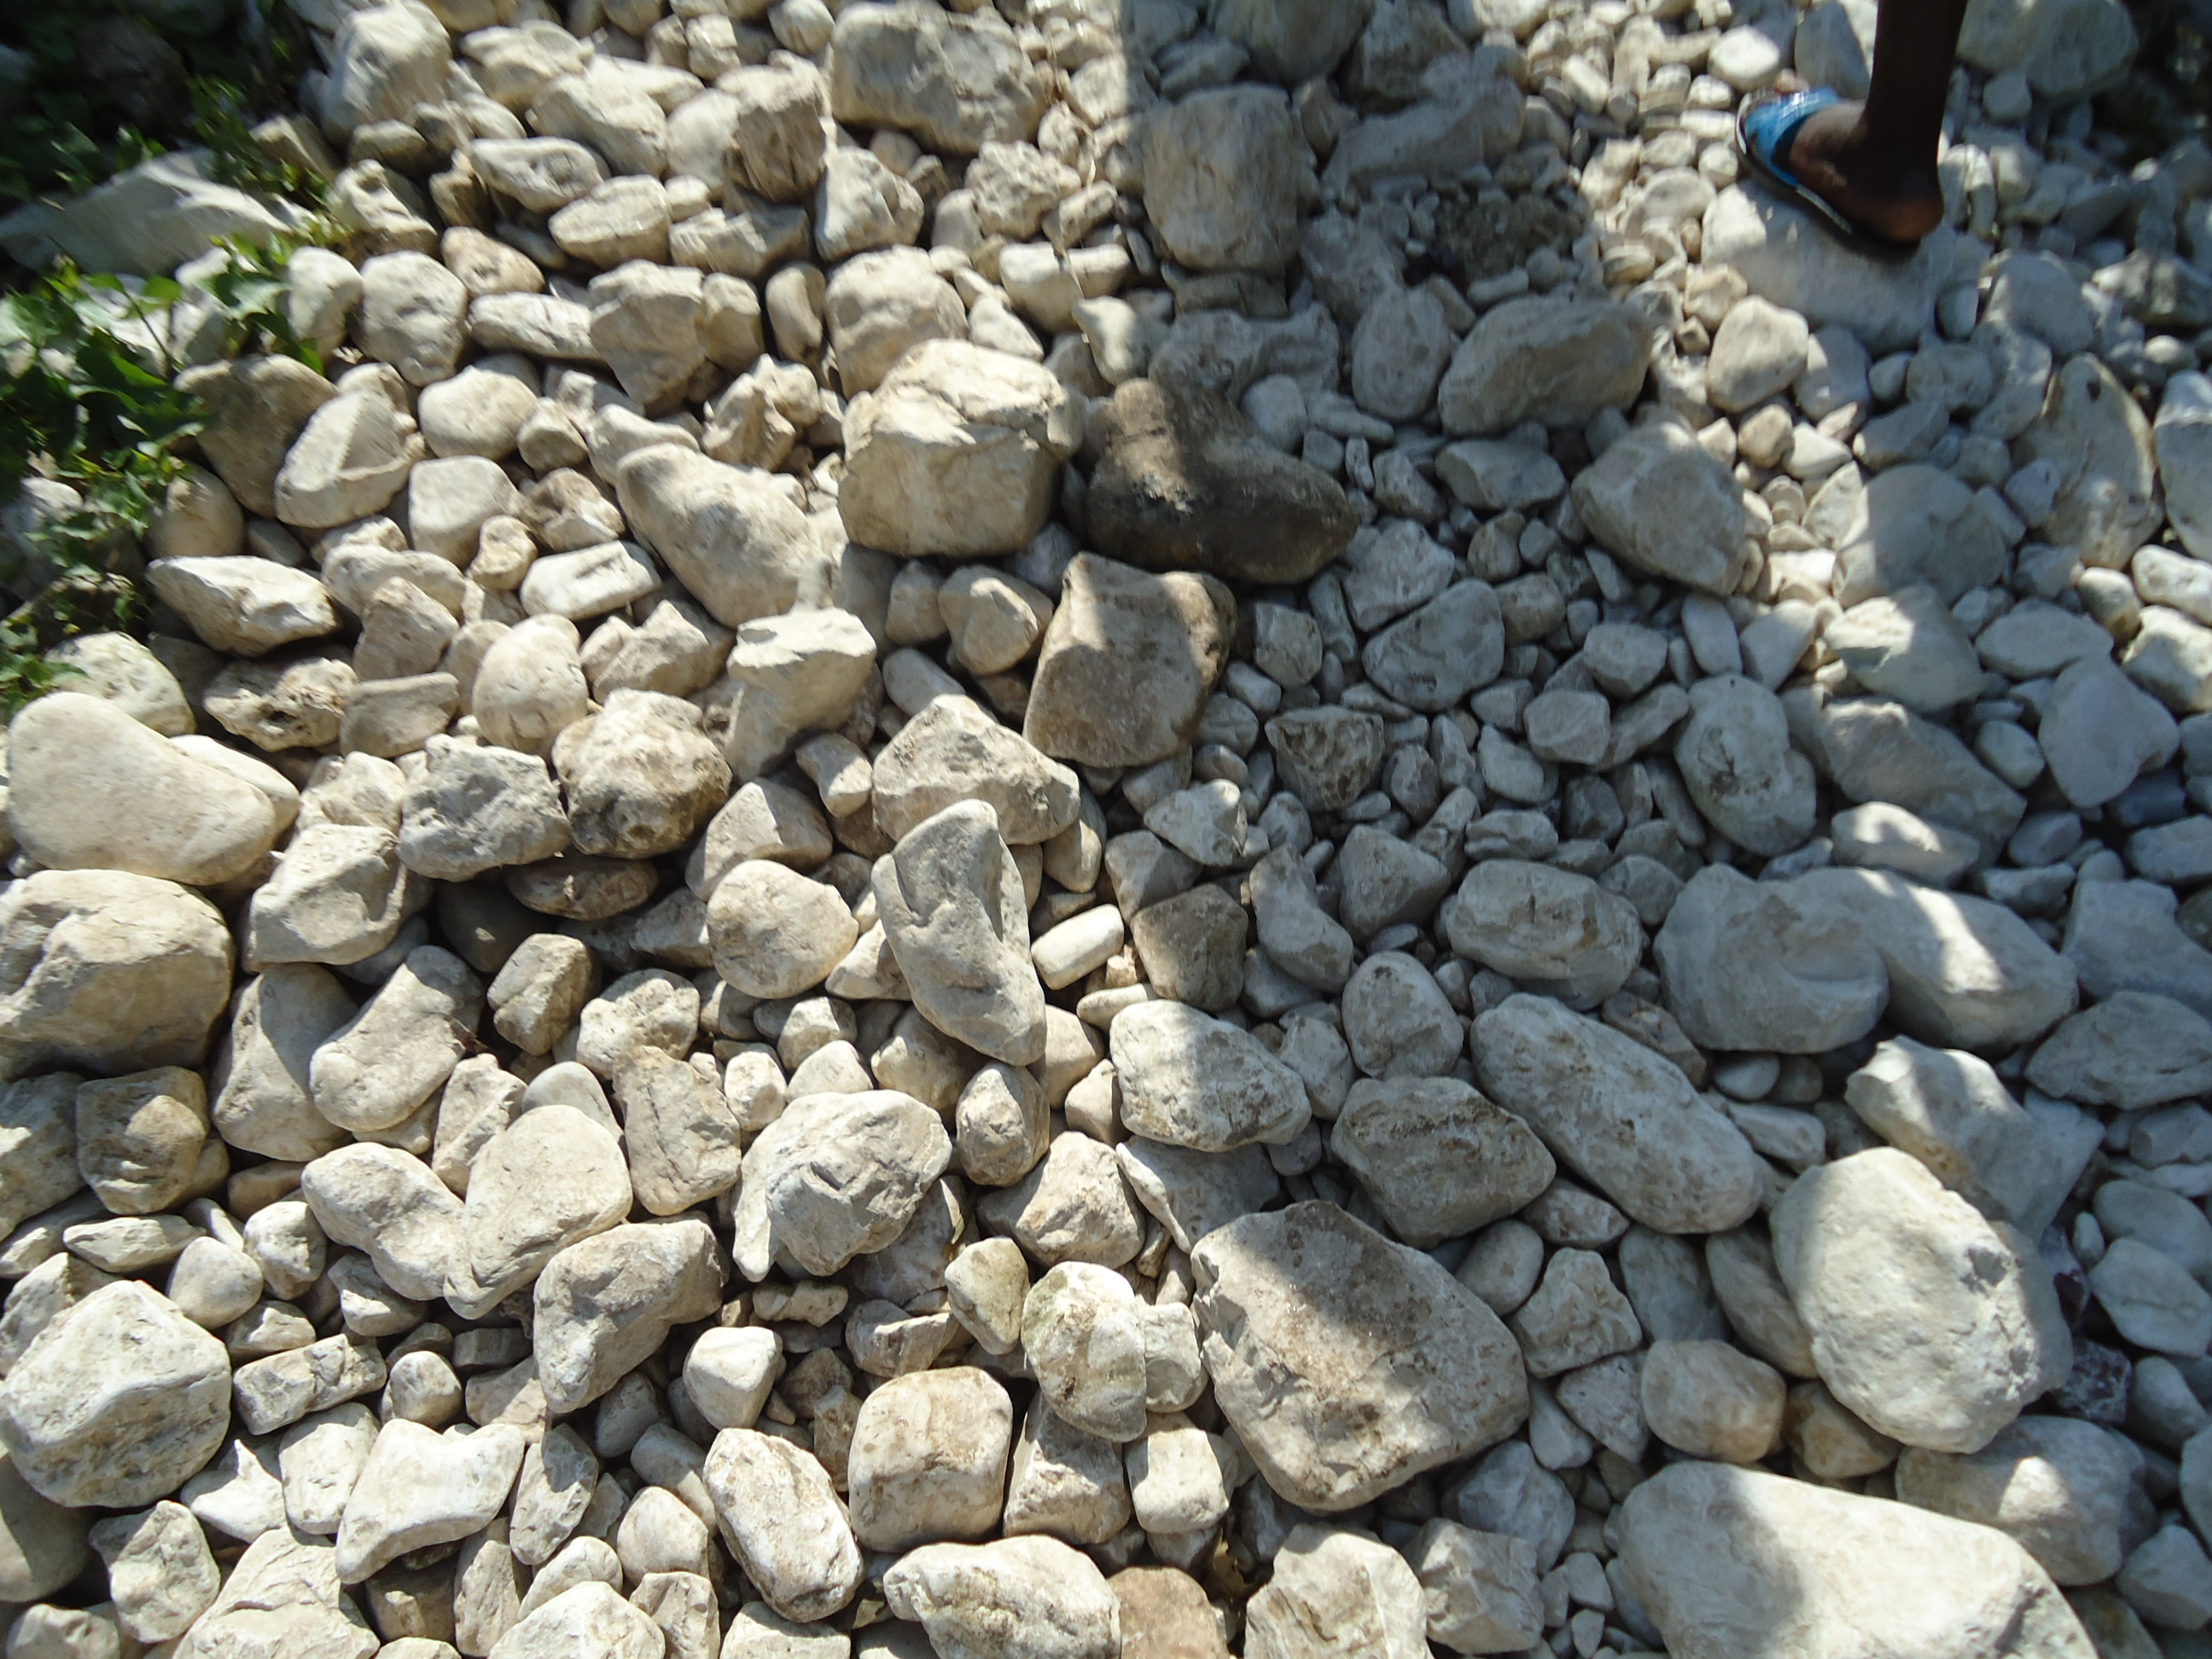 Rocks in Haiti